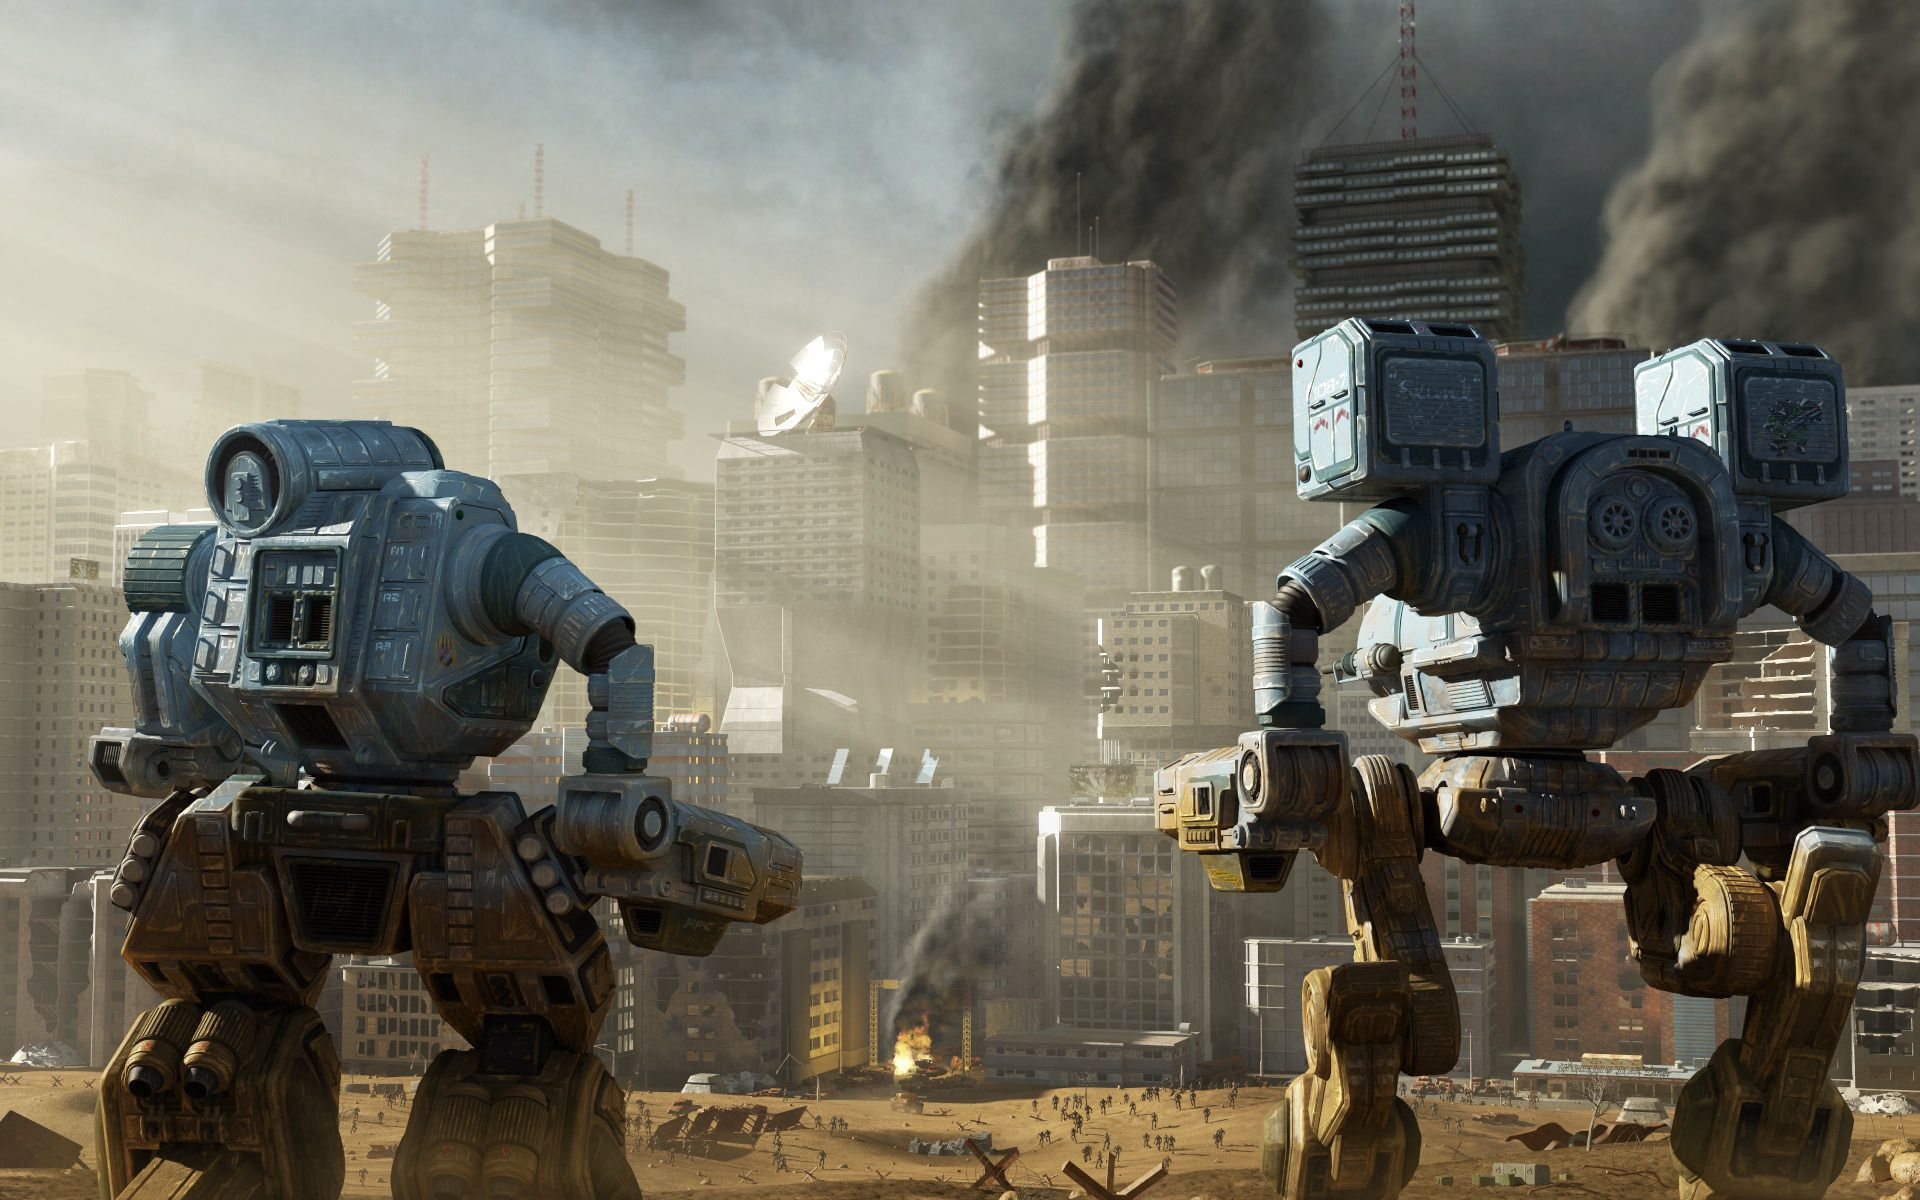 130890 Screensavers and Wallpapers Robots for phone. Download Fantasy, City, Skyscrapers, People, Vanity, Destruction, Robots pictures for free